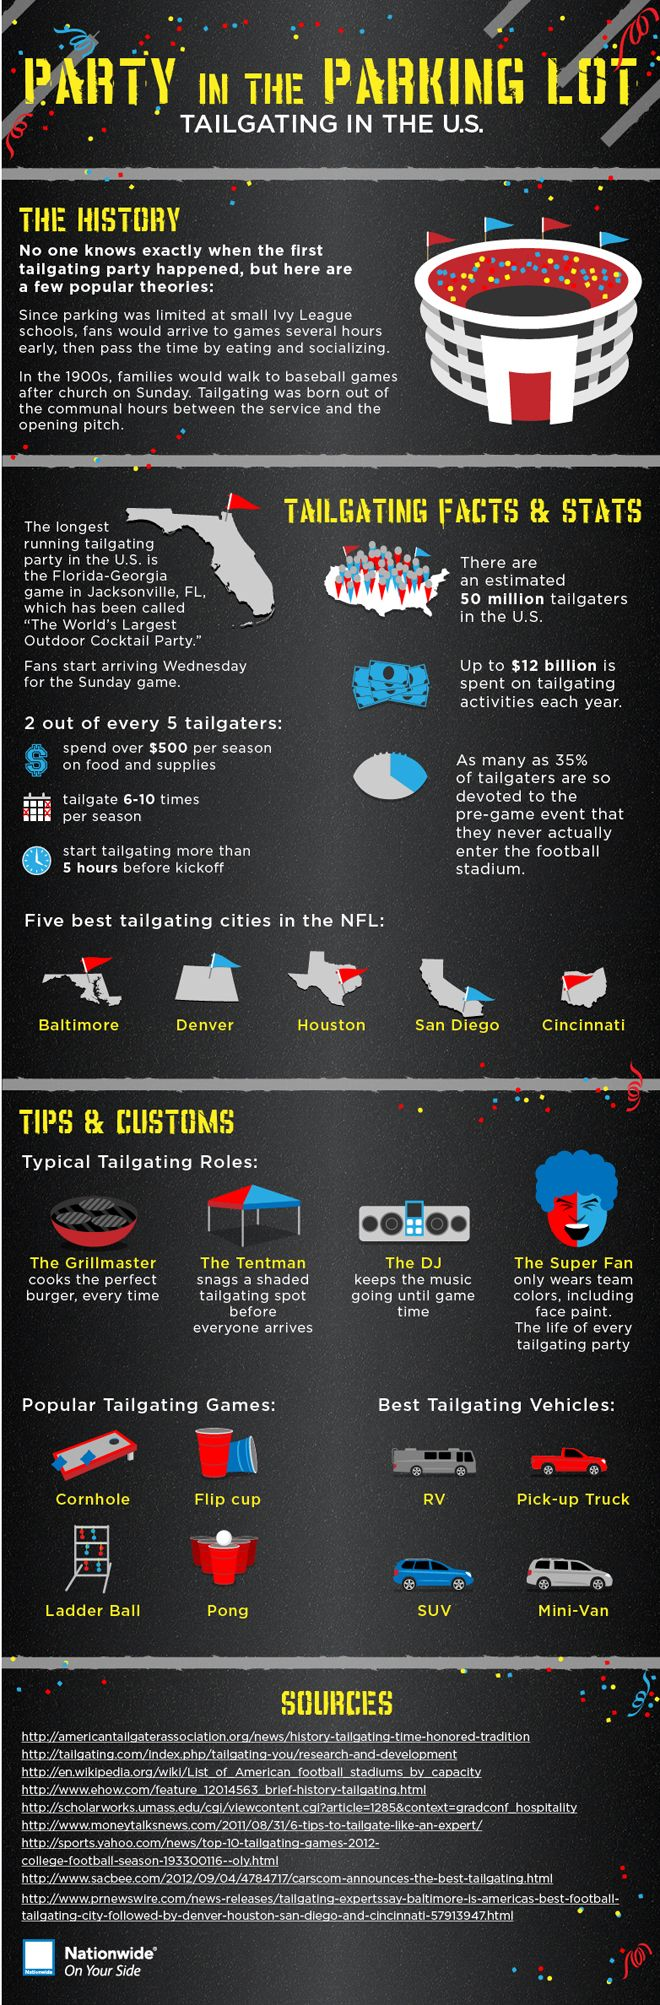 Find out interesting football tailgating statistics and facts in this tailgating infographic.